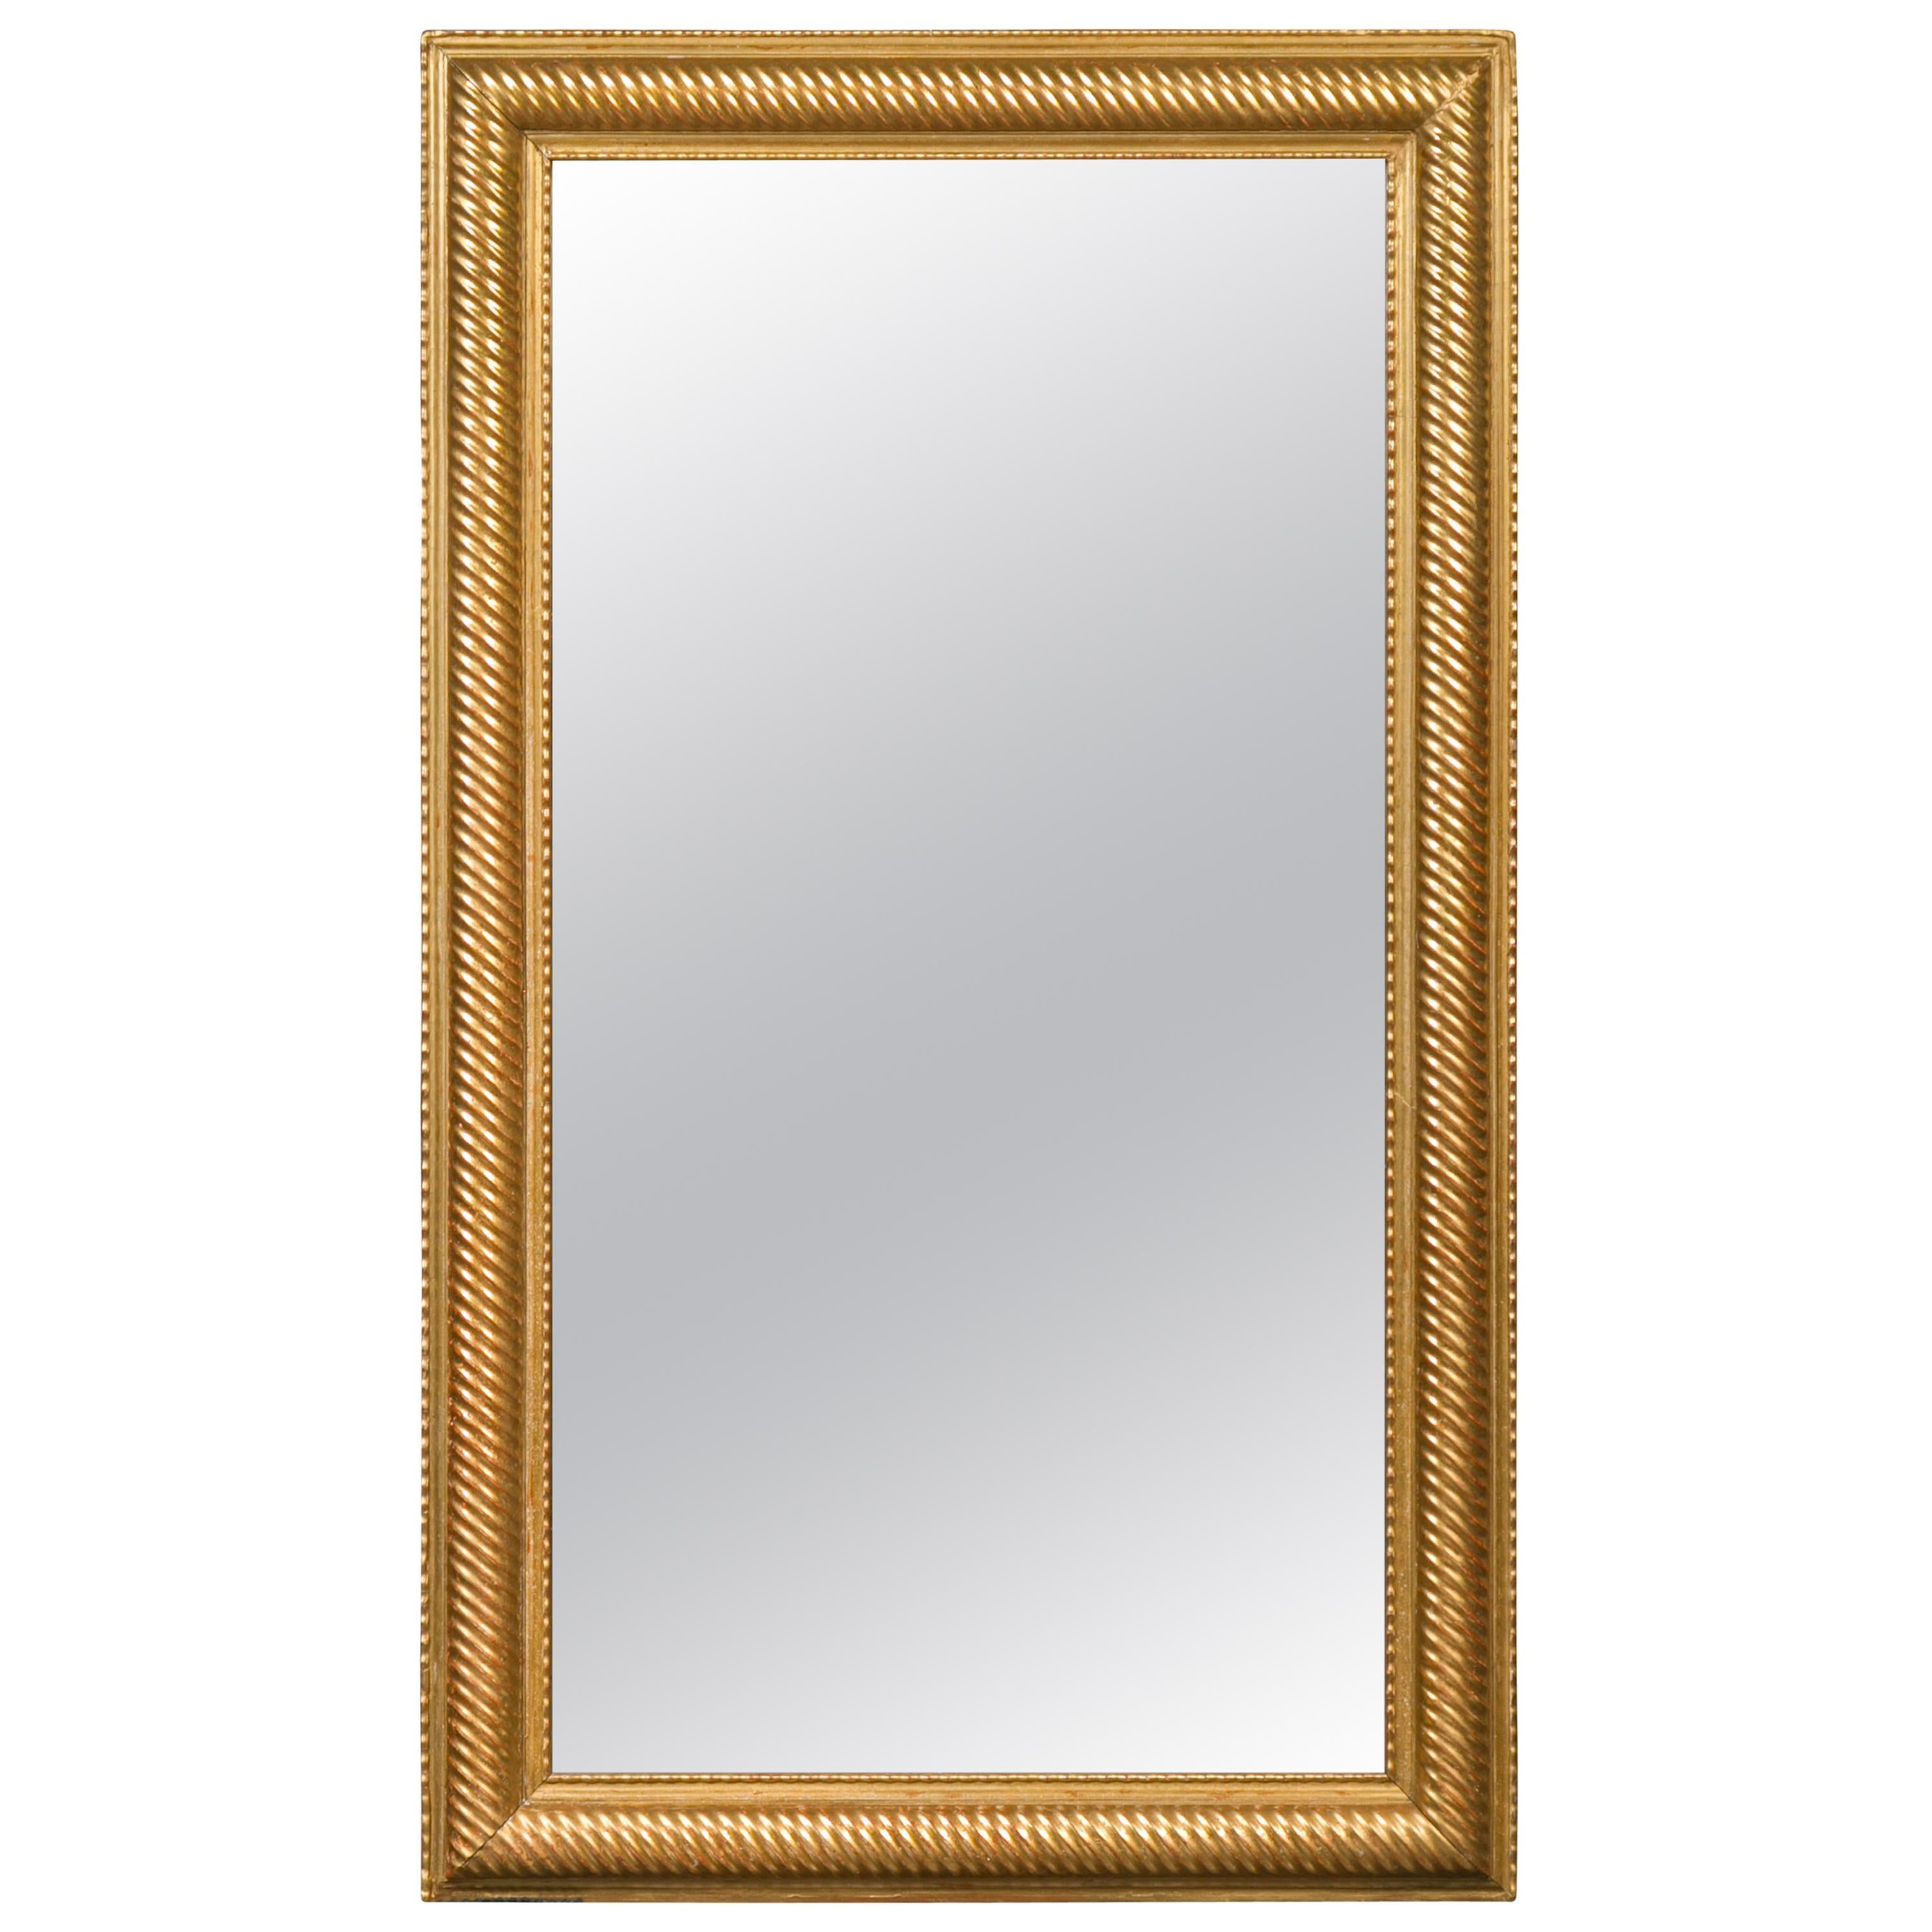 French Giltwood Rectangular Mirror with Twisted Motifs, circa 1900